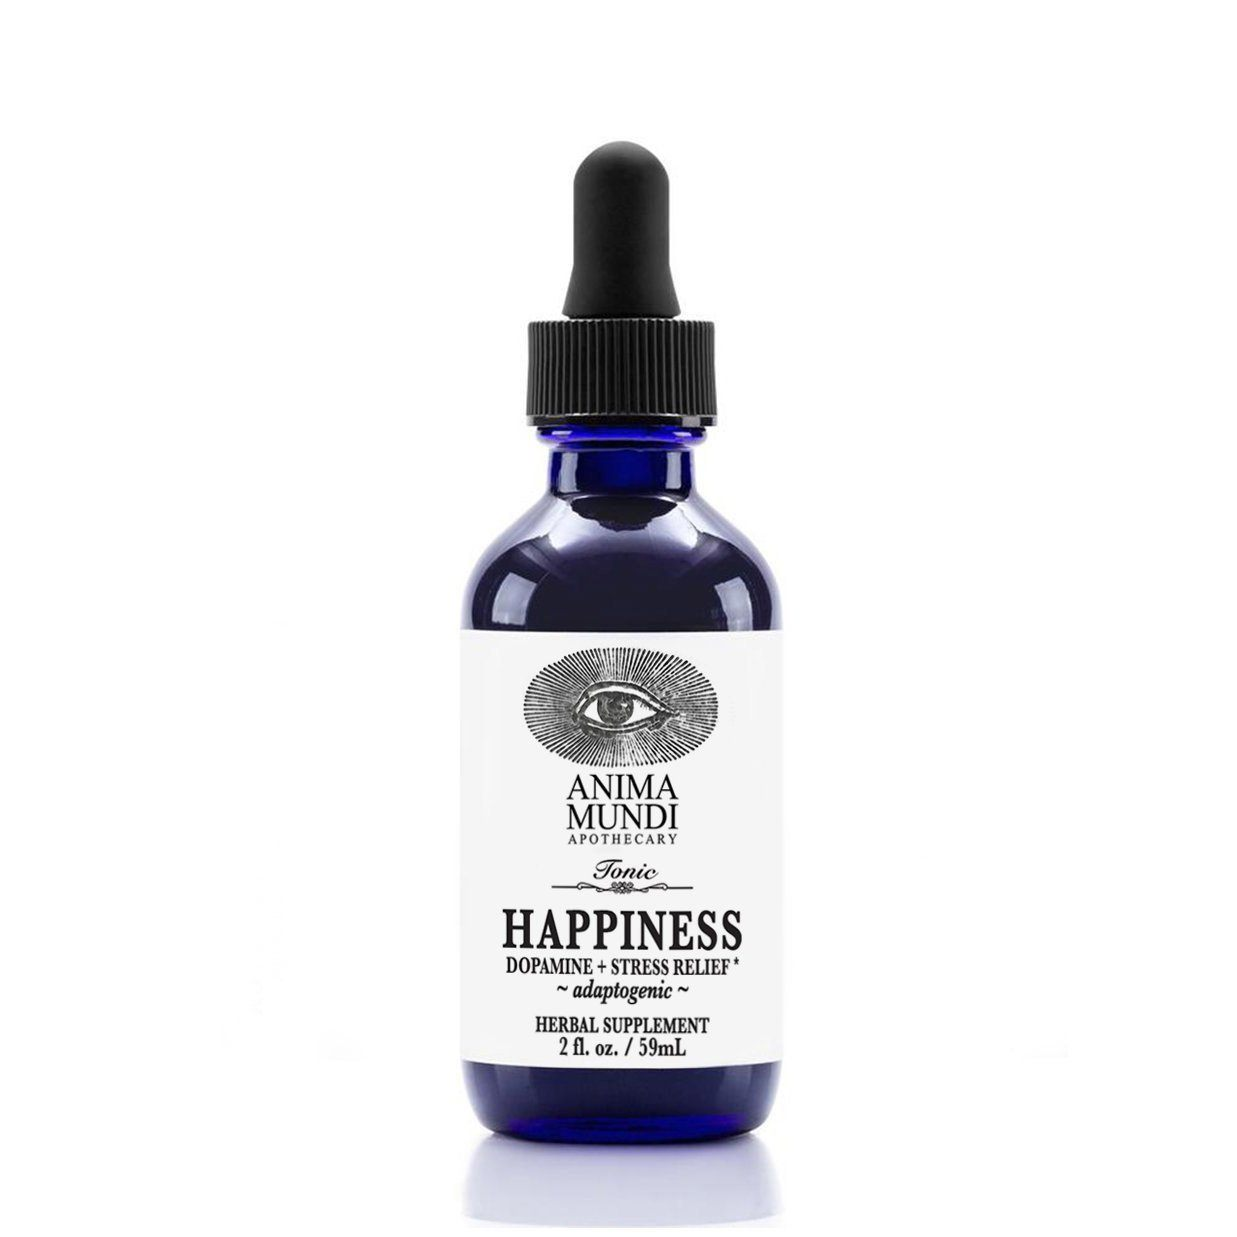 Happiness Tonic: Dopamine + Stress Relief Nahrungsergänzungsmittel Anima Mundi Apothecary - Genuine Selection